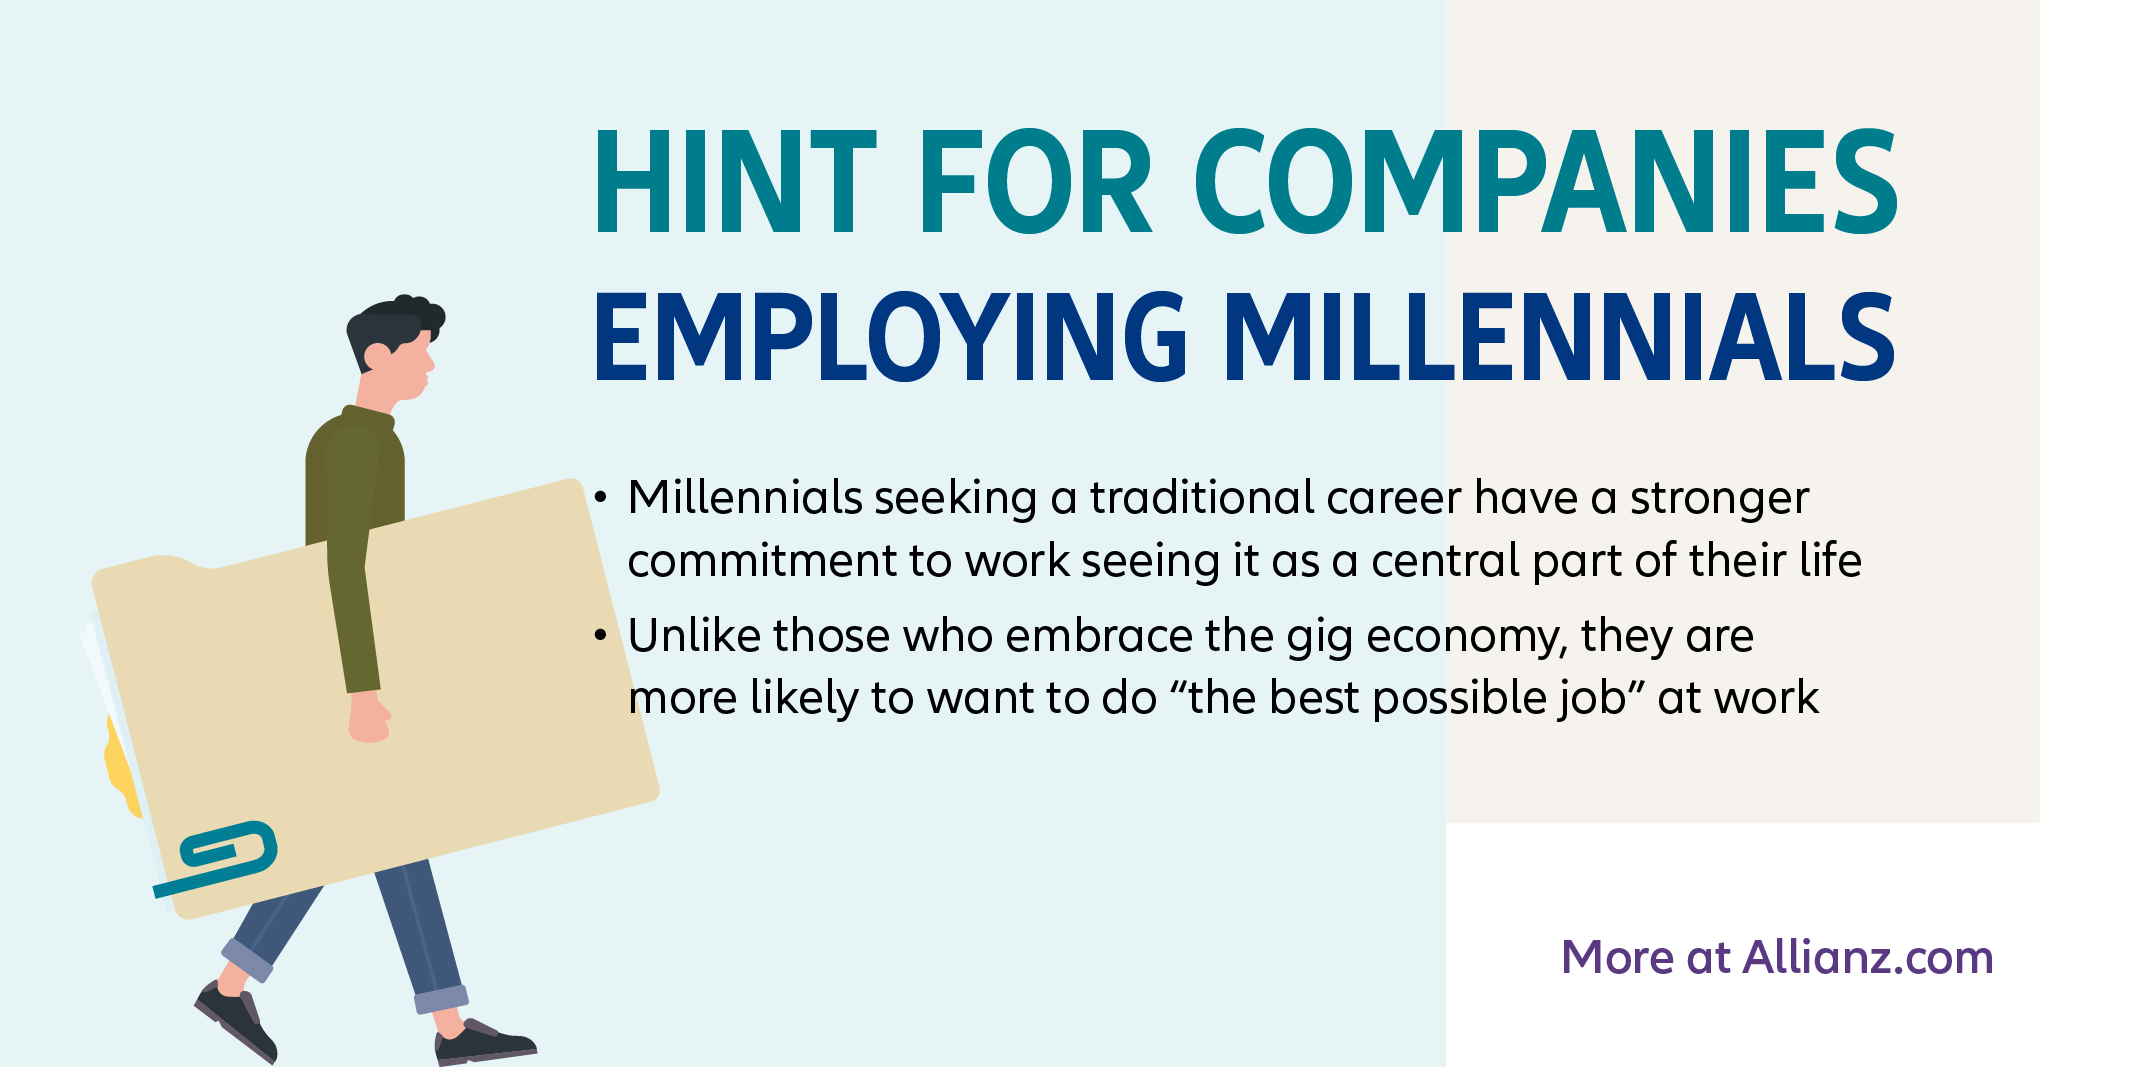 Forum on this topic: How to Work With Millennials, how-to-work-with-millennials/